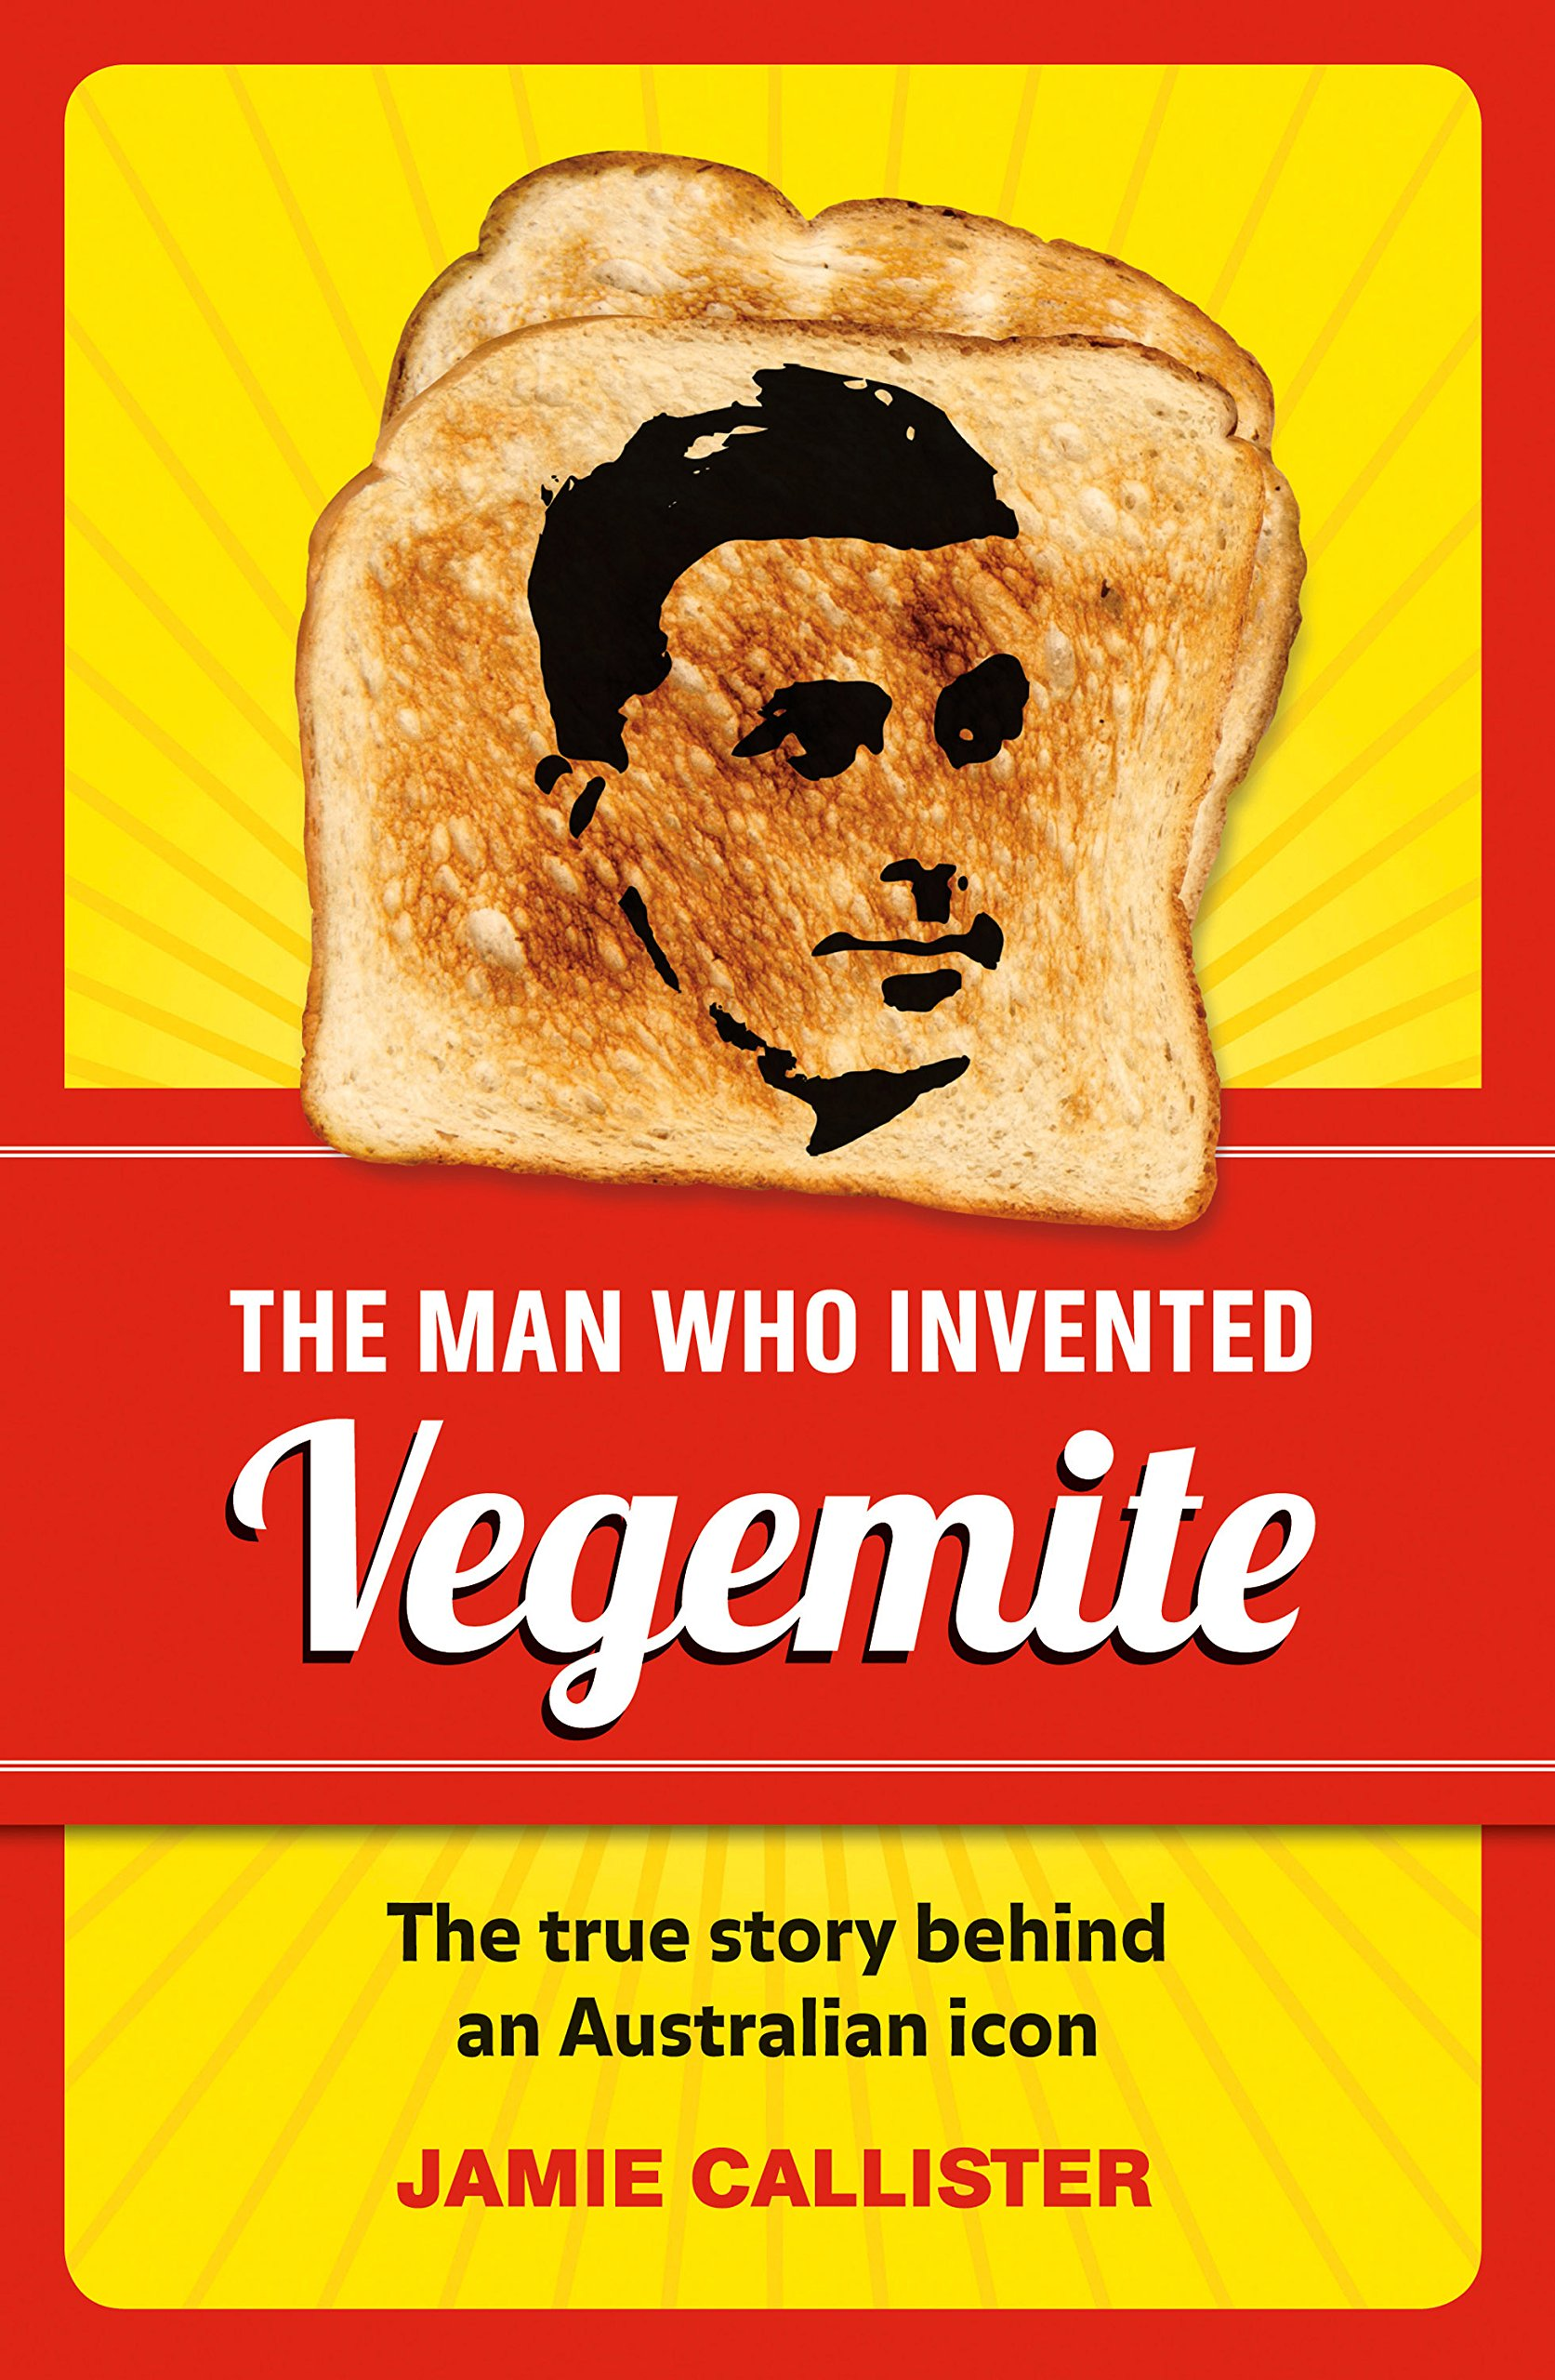 inventor of vegemite